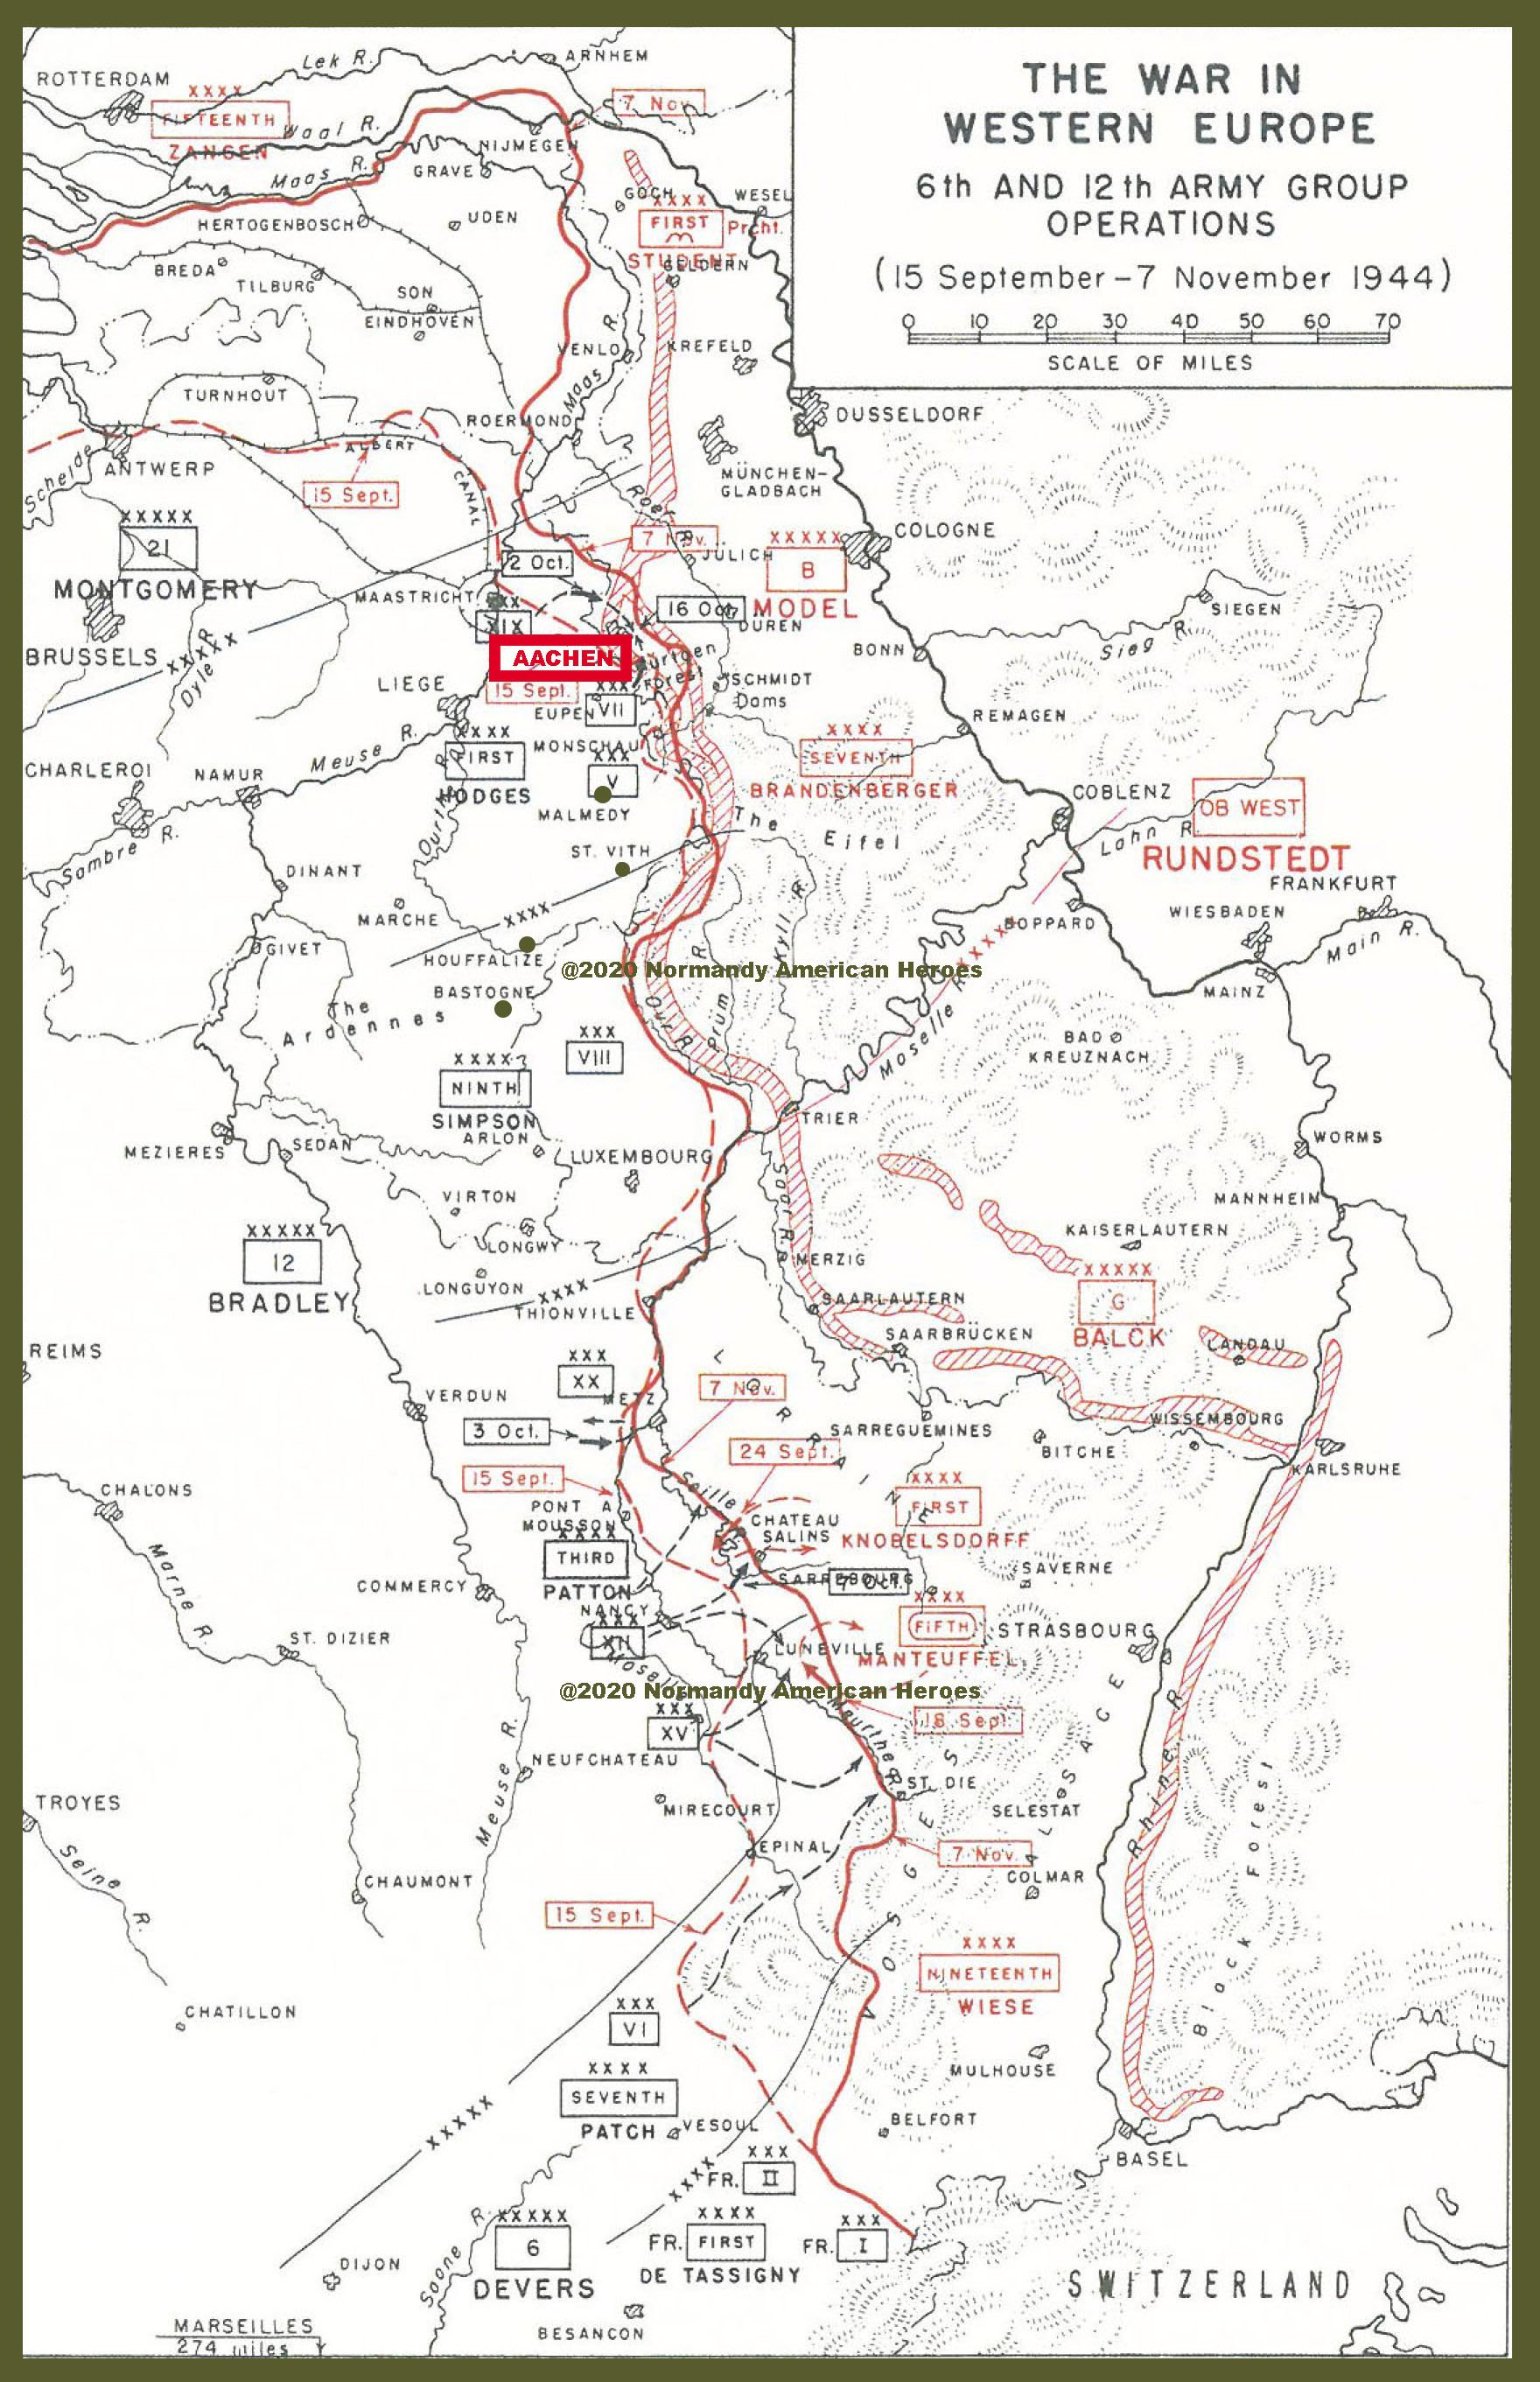 15 September to 7 November 1944 6th and 12th Amry Group Opeations copy